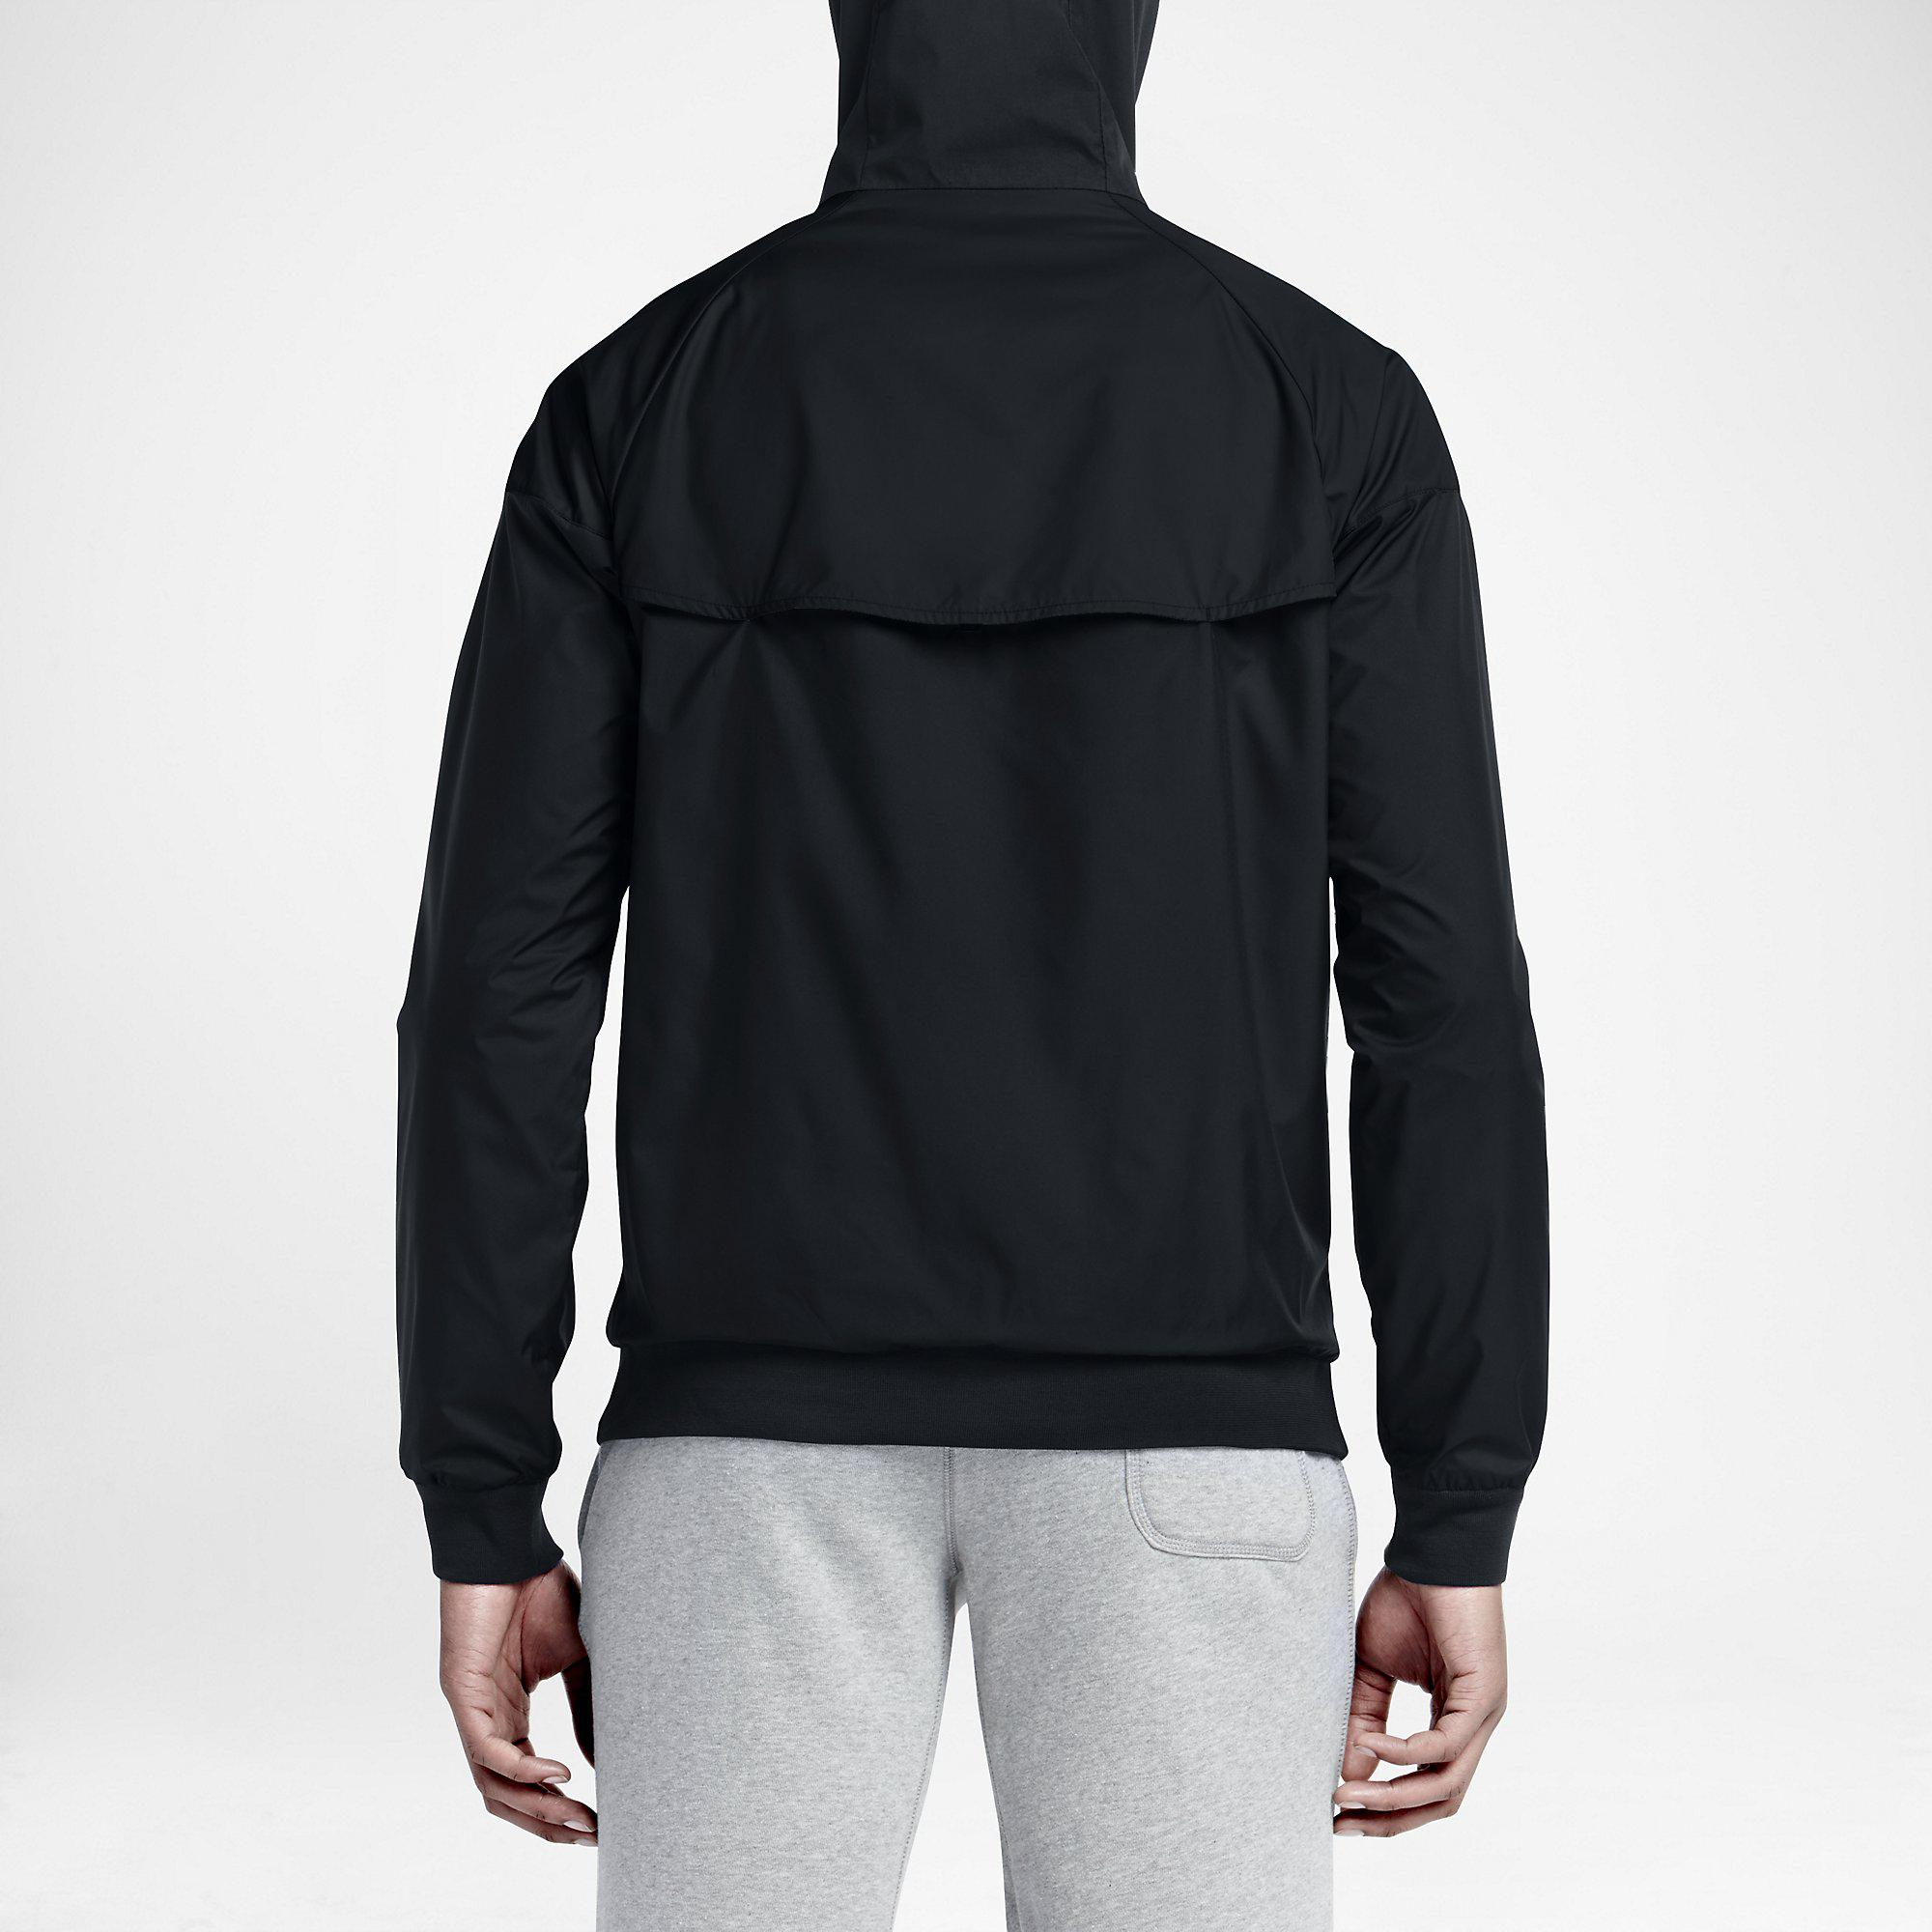 check out 4fb6f 1e855 Nike Mens Sportswear Windrunner Jacket - Black